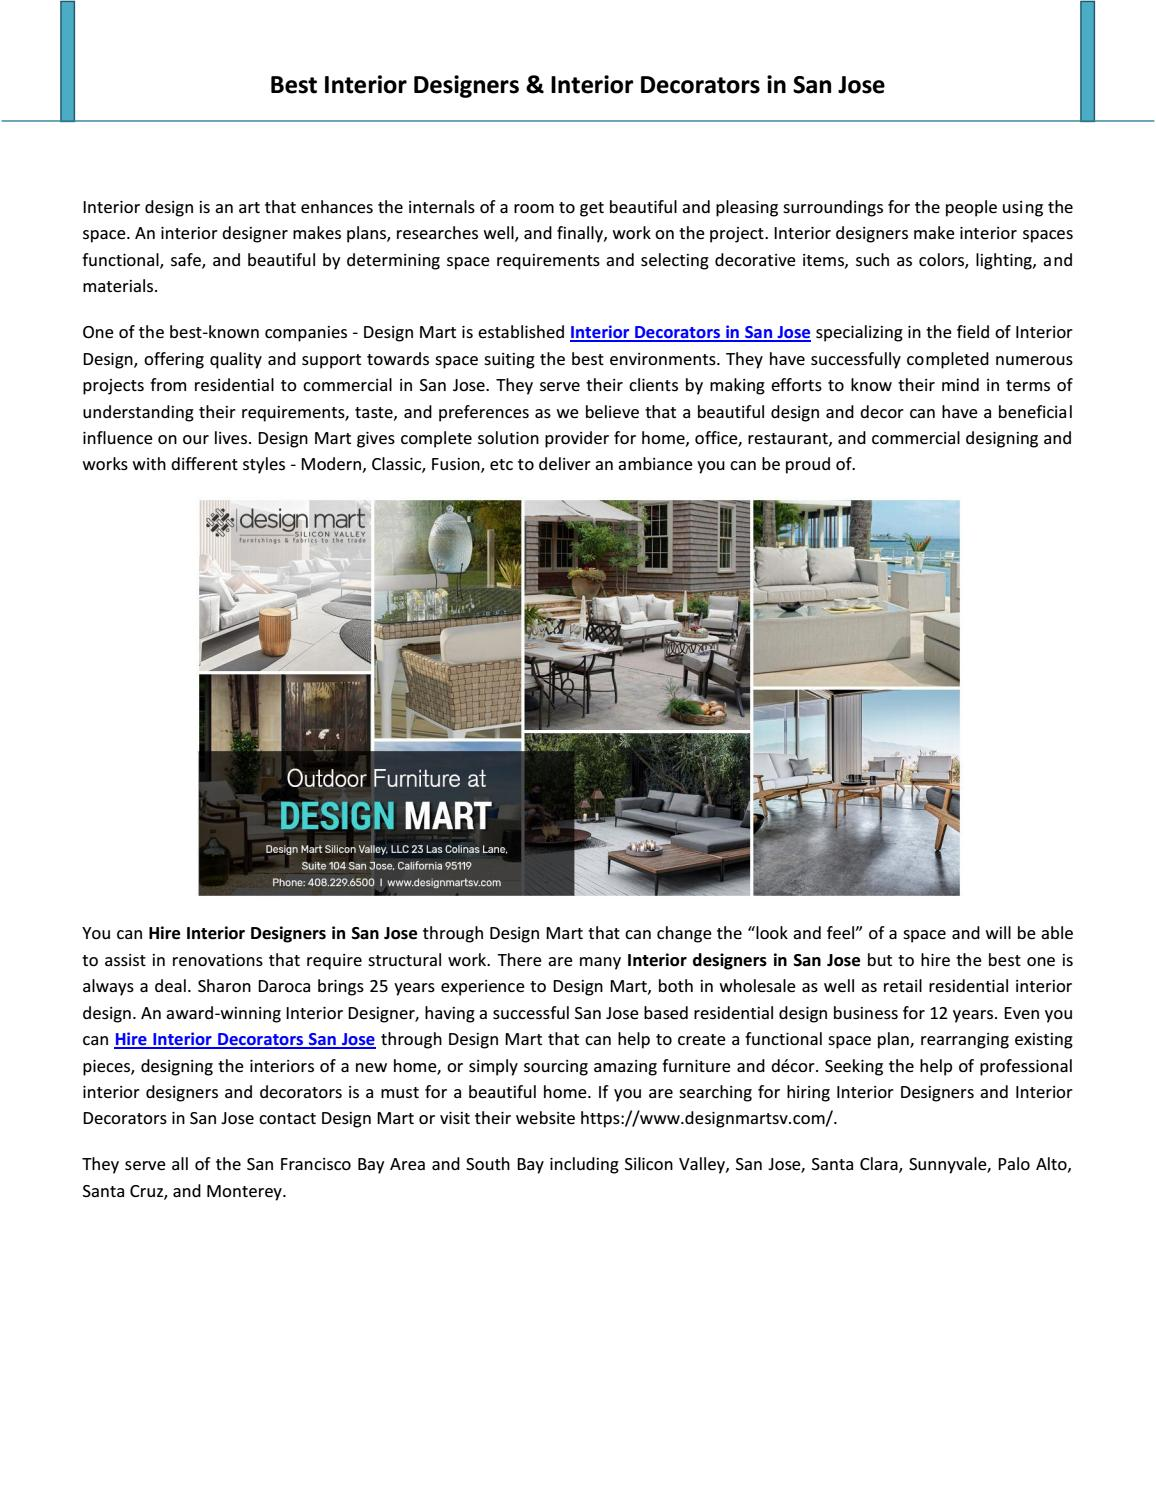 Best Interior Designers Interior Decorators In San Jose By Ethan Lawrence Issuu